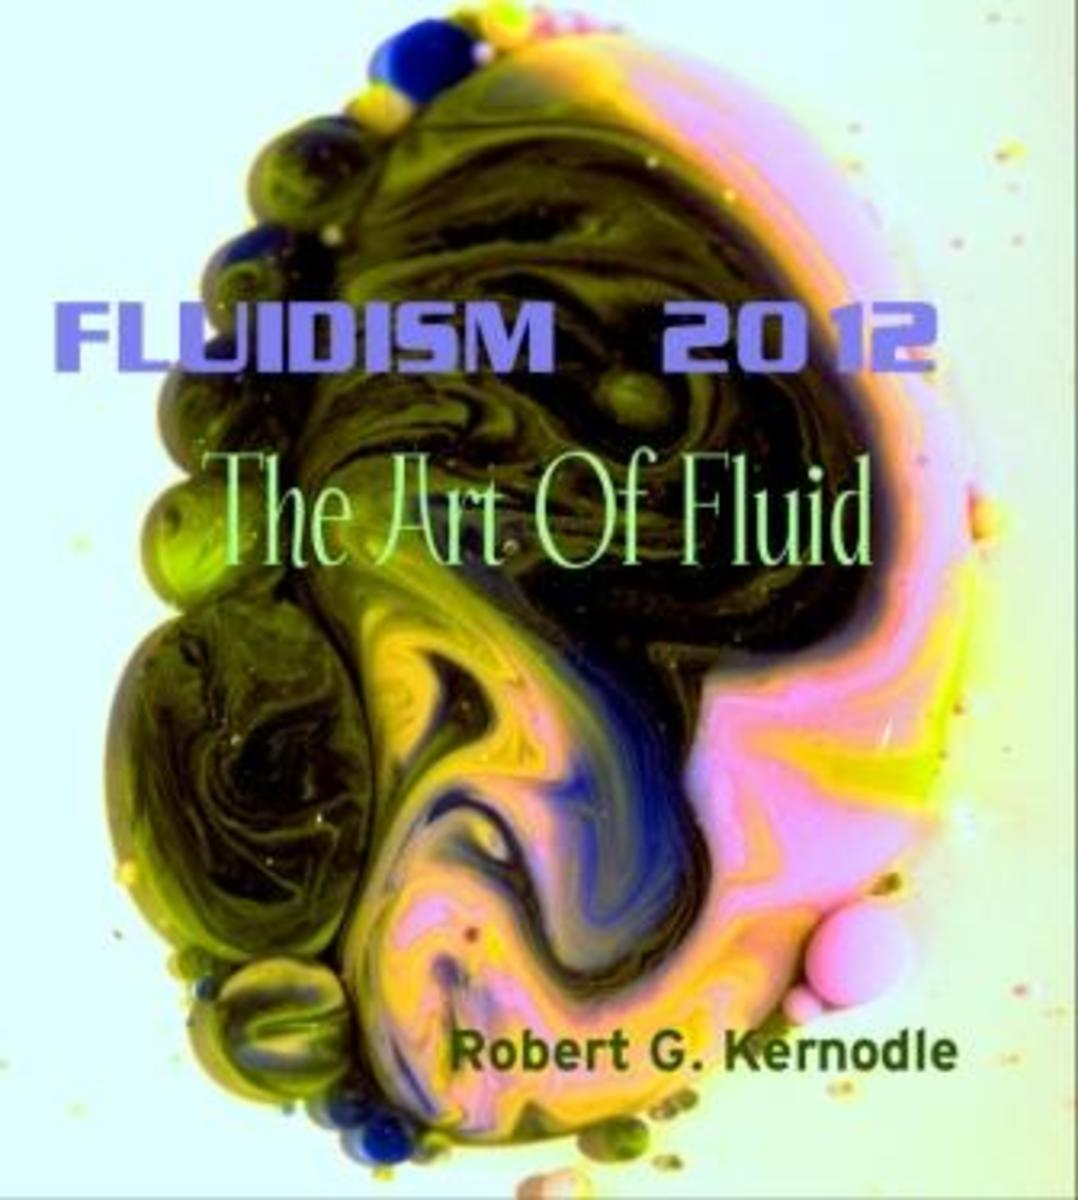 Forthcomming FLUIDISM 2012 Wall Calendar by Robert G. Kernodle